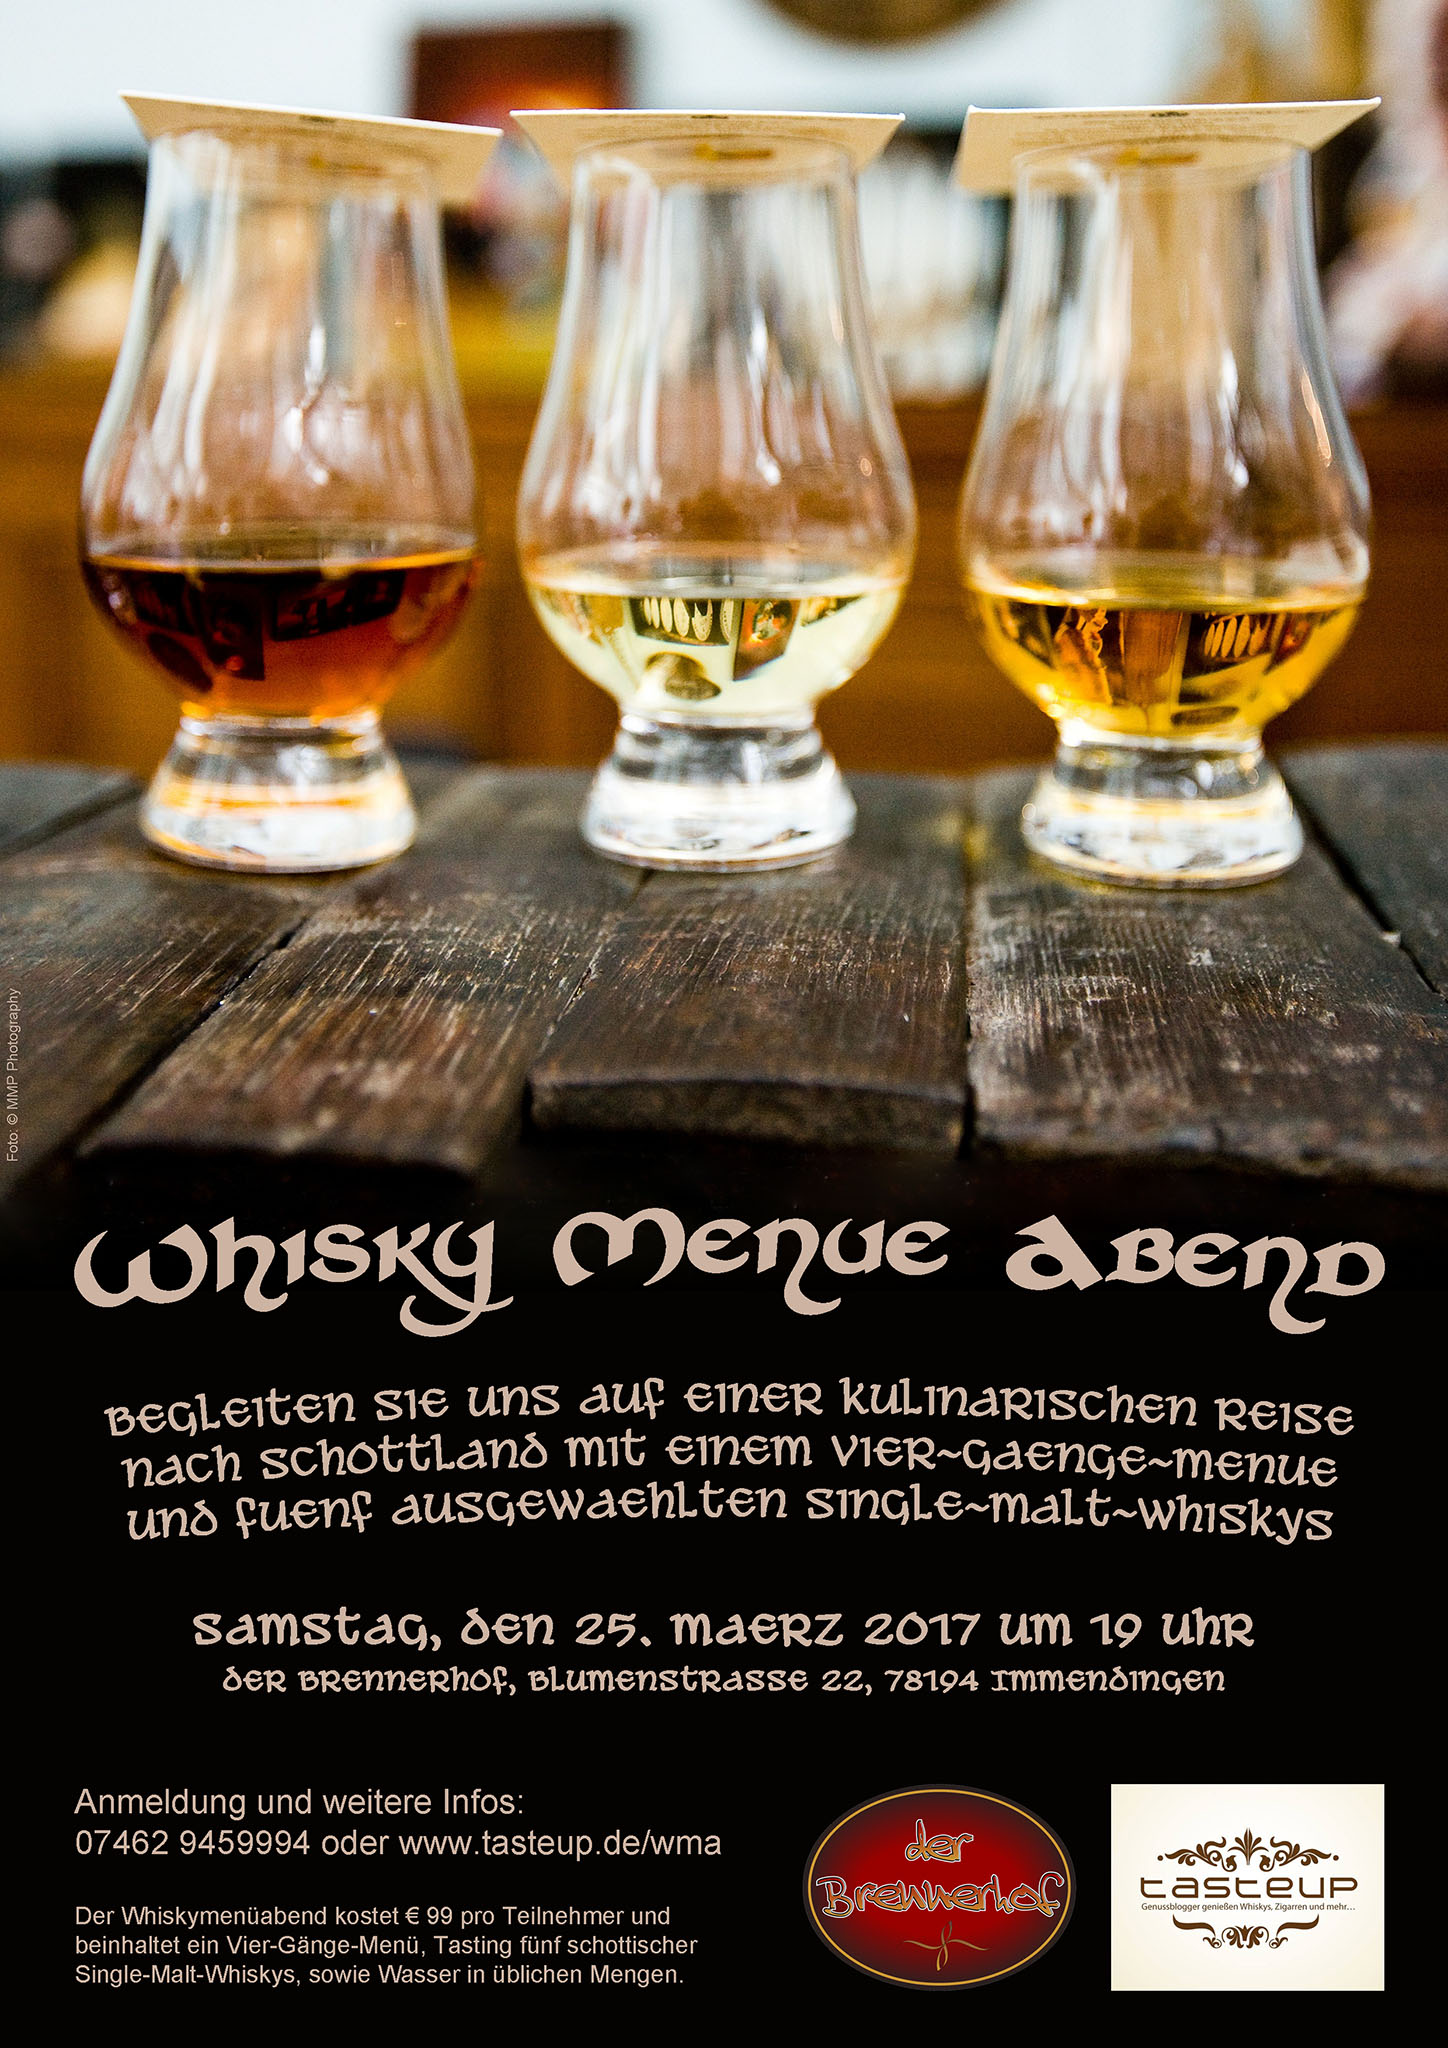 Tasteup Whiskymenüabend (03/2017)